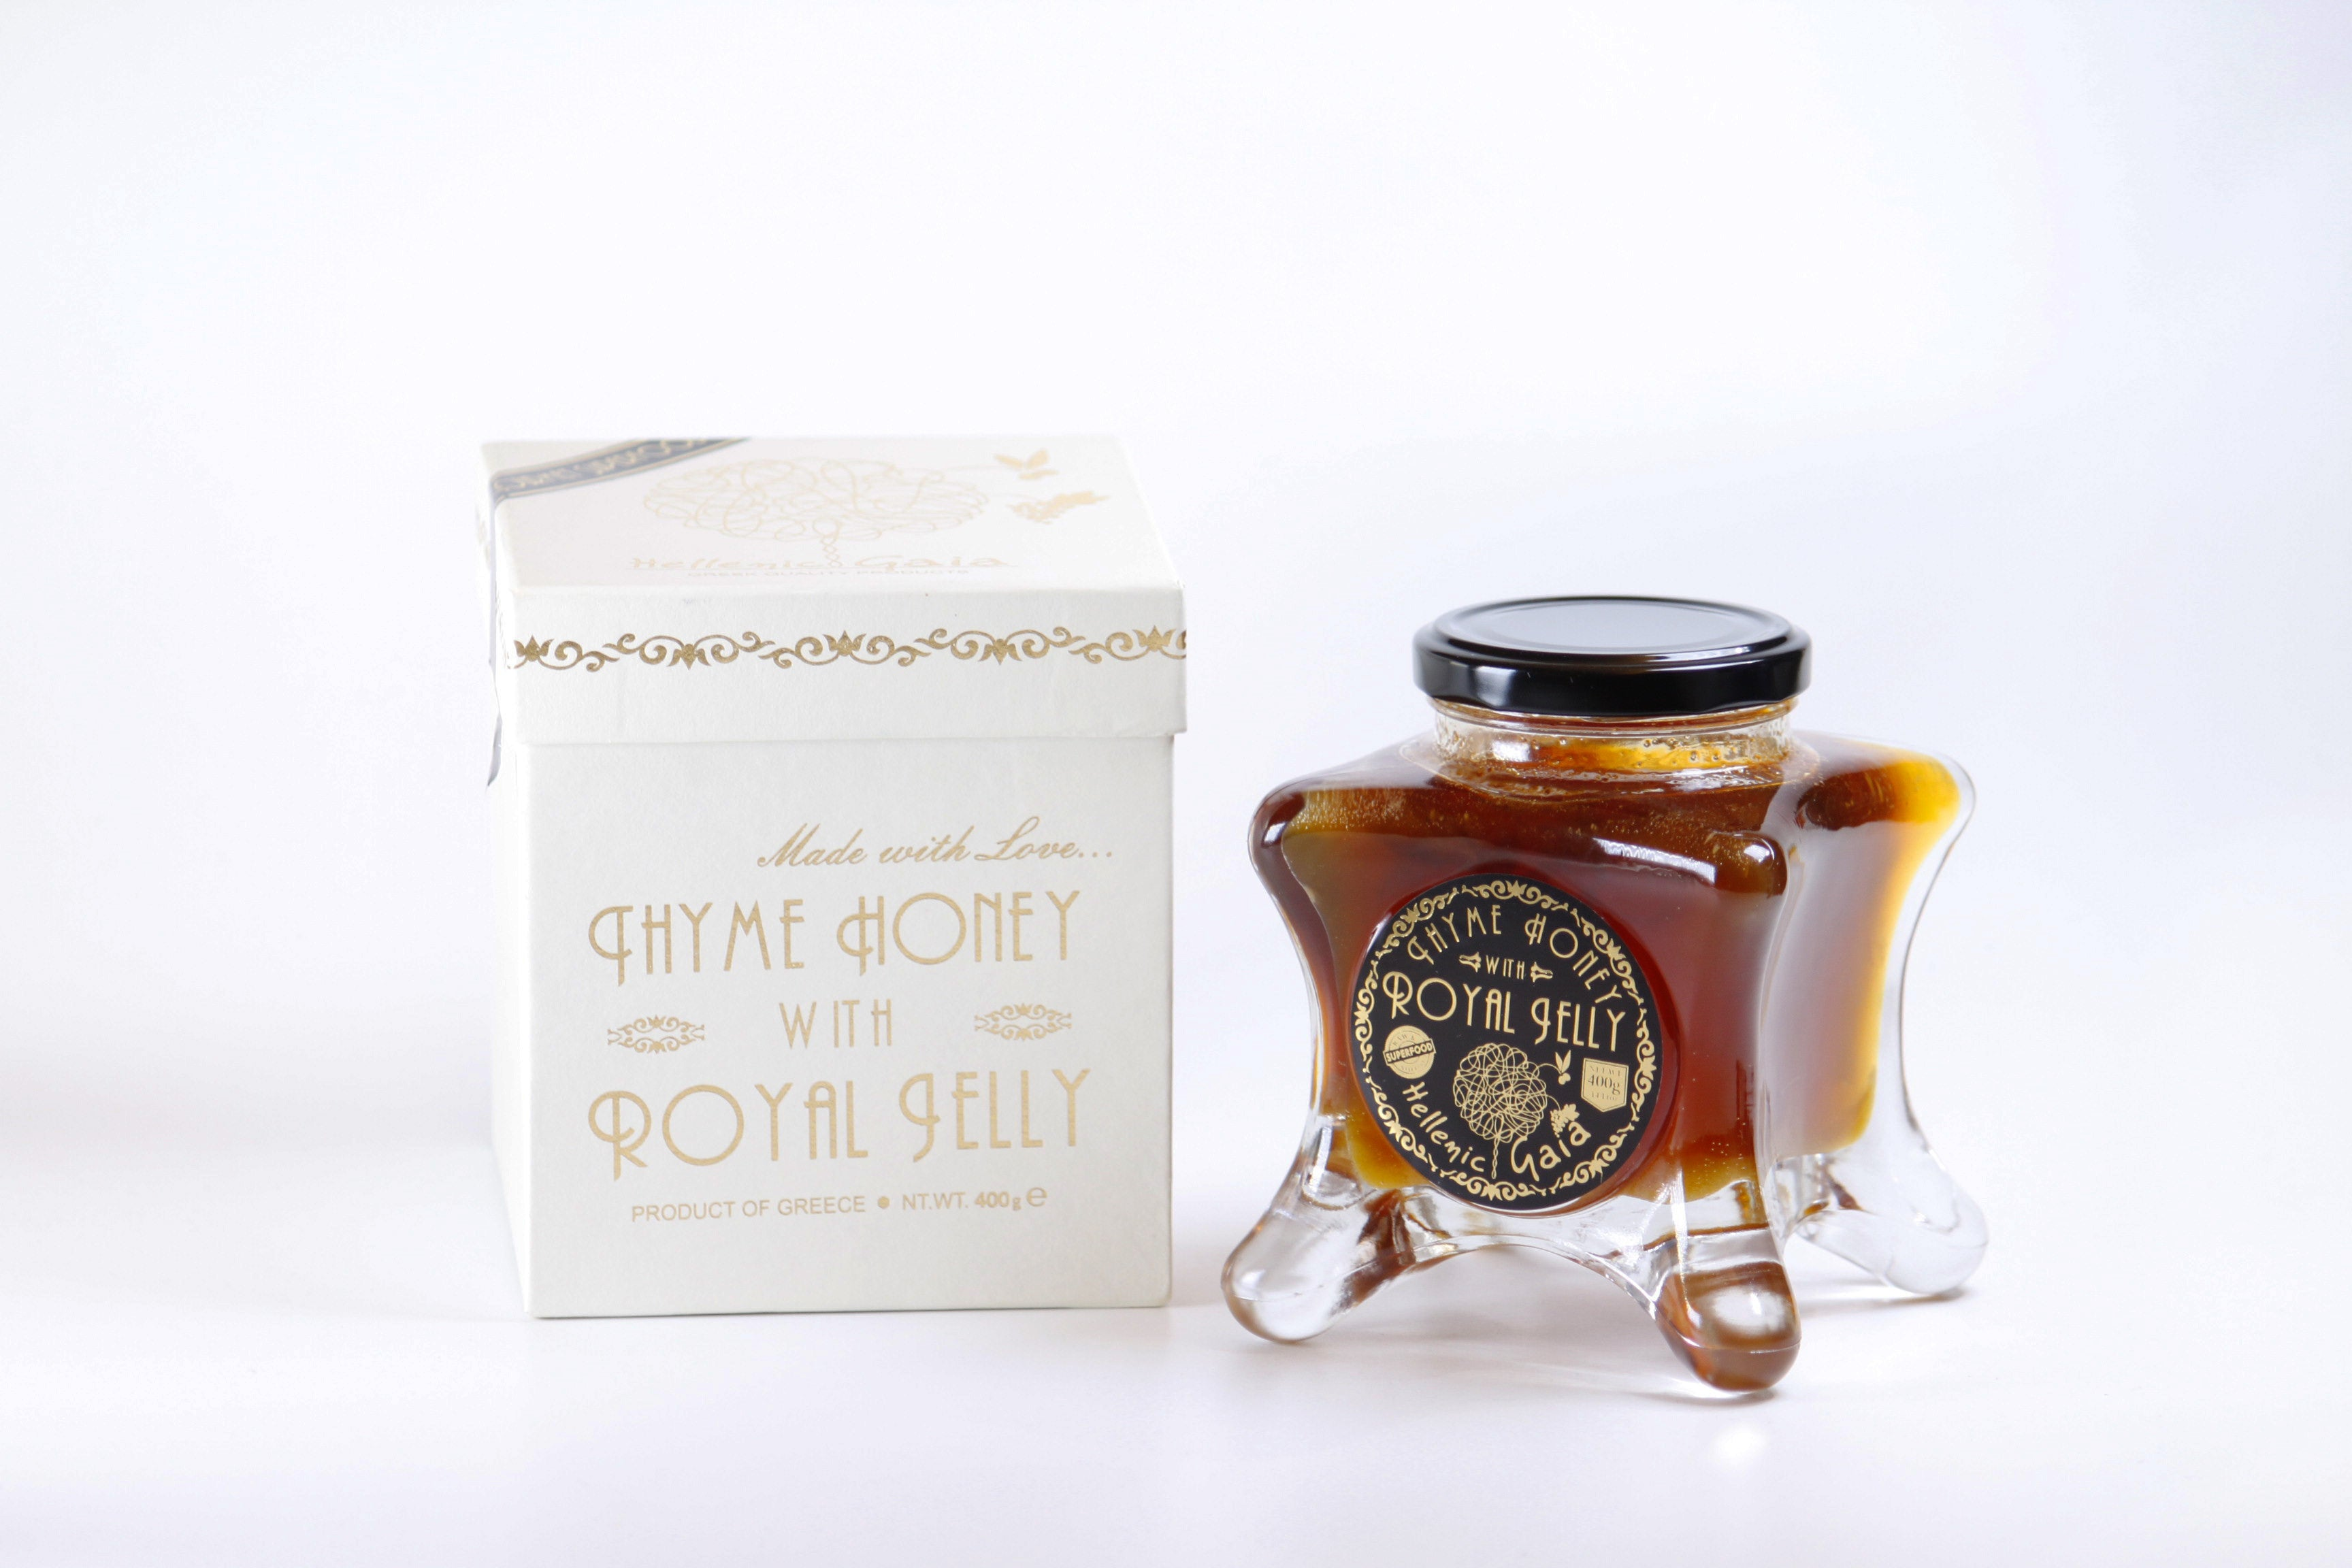 Thyme Honey With Royal Jelly